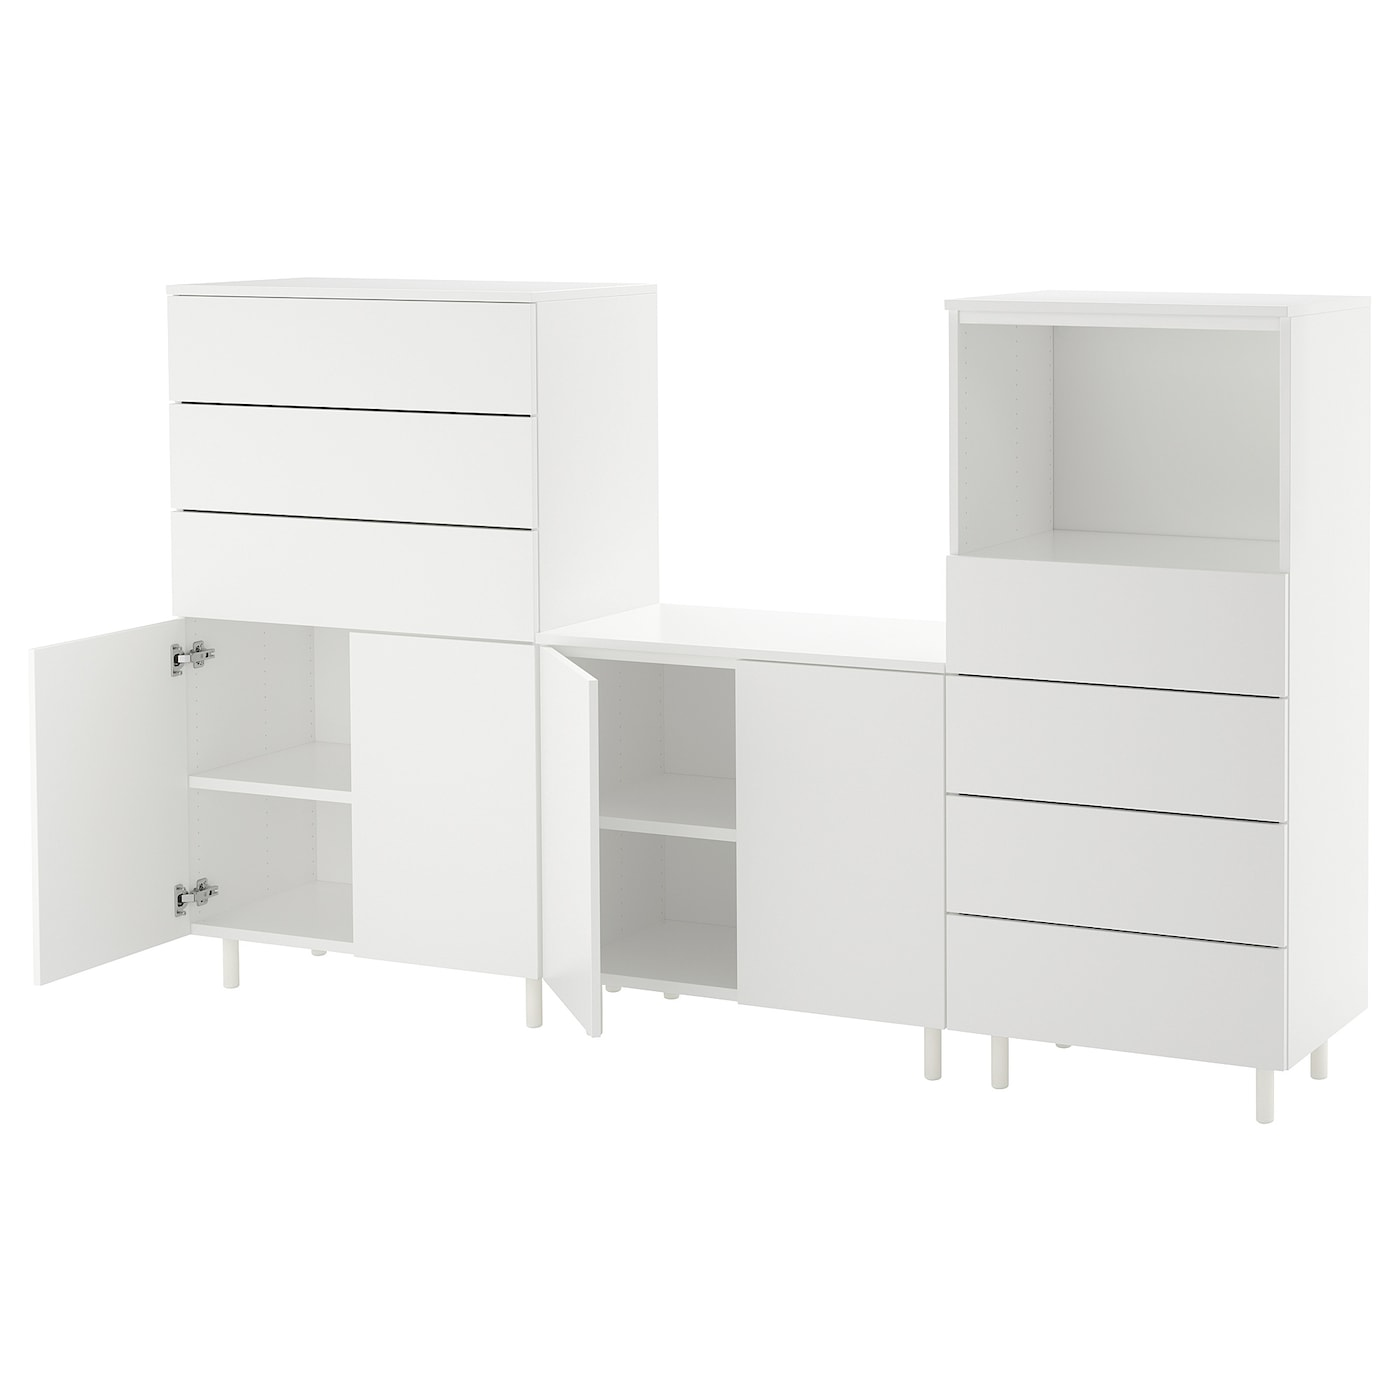 IKEA PLATSA storage combination